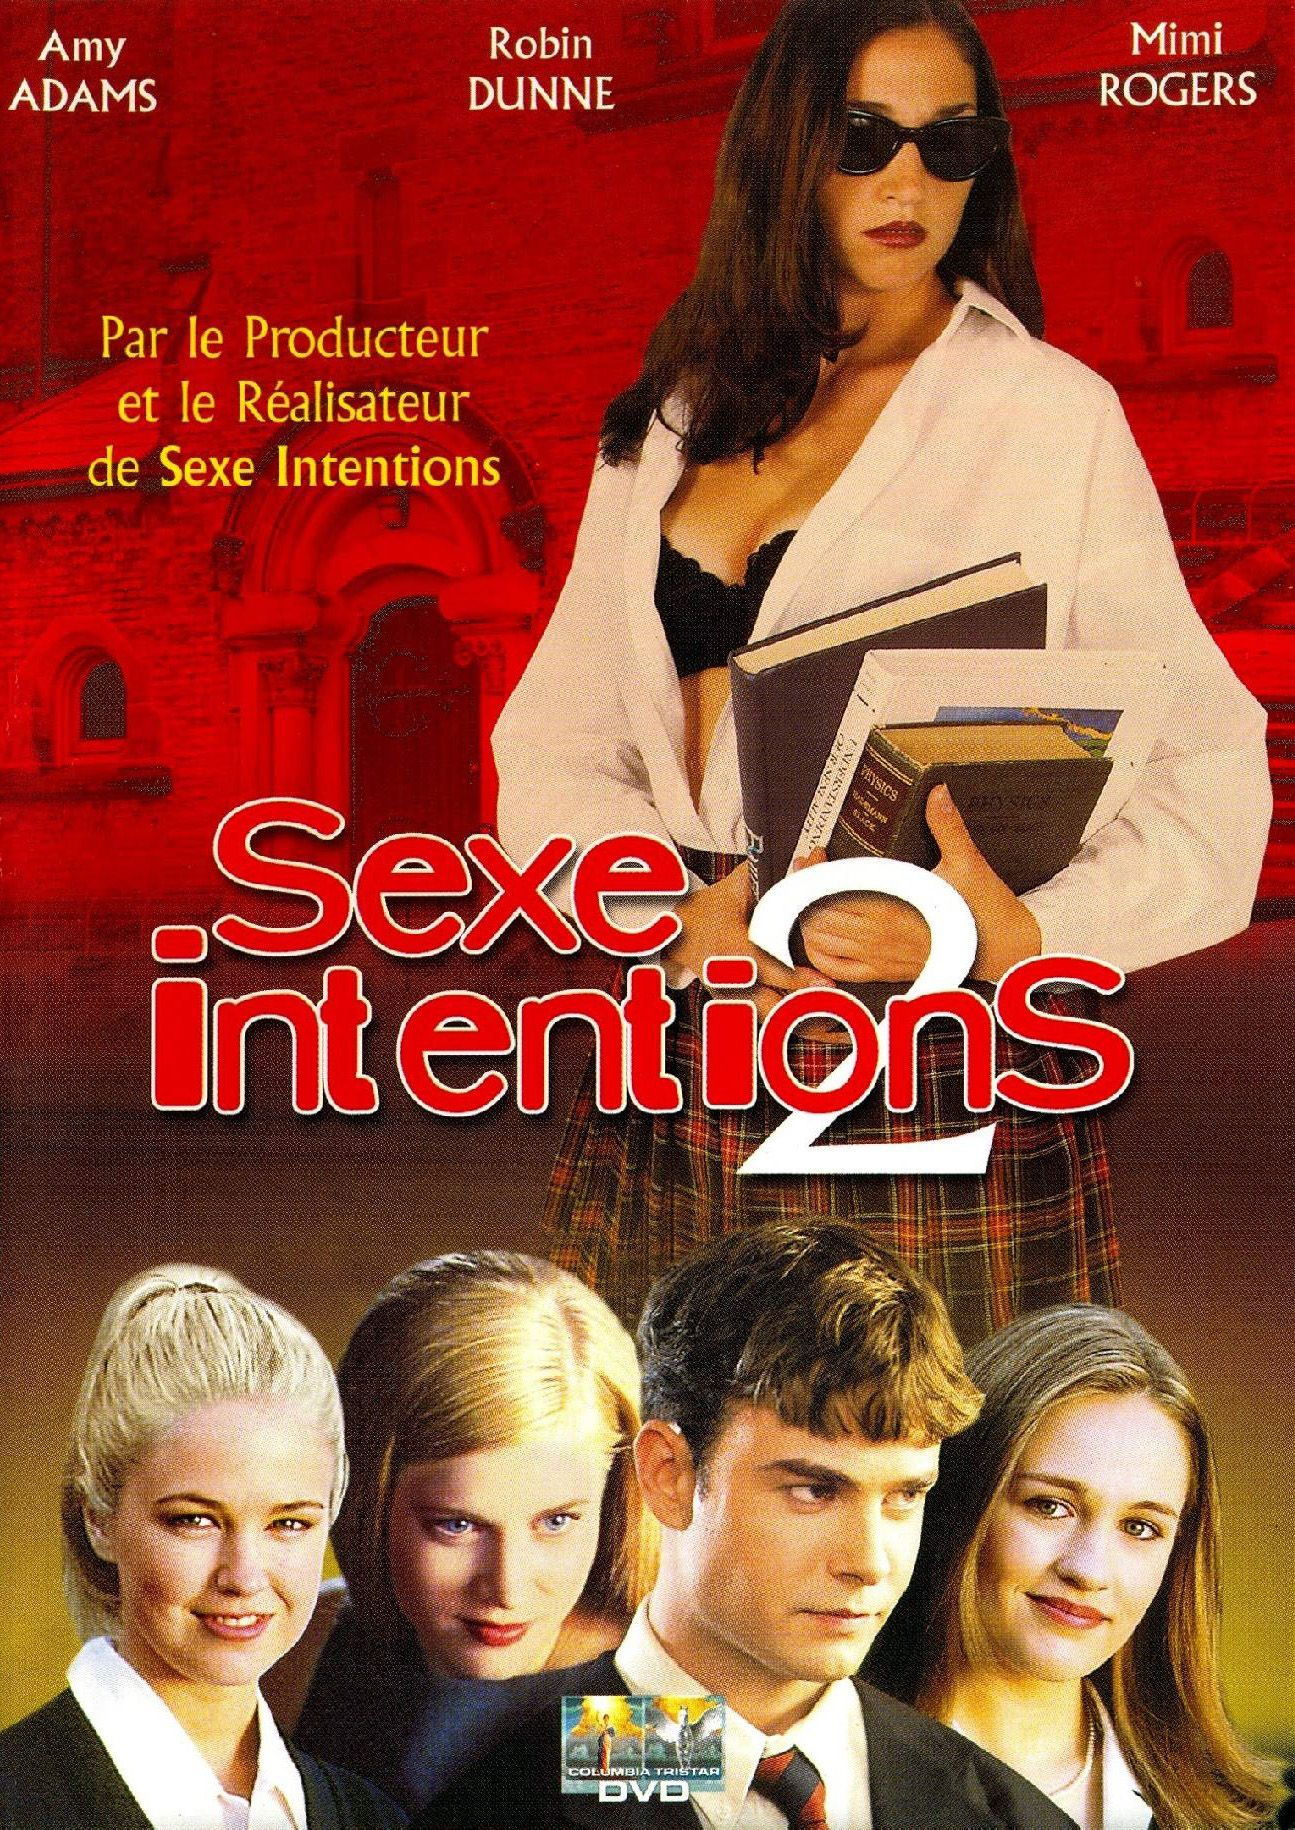 film sexe intention smiley sexe